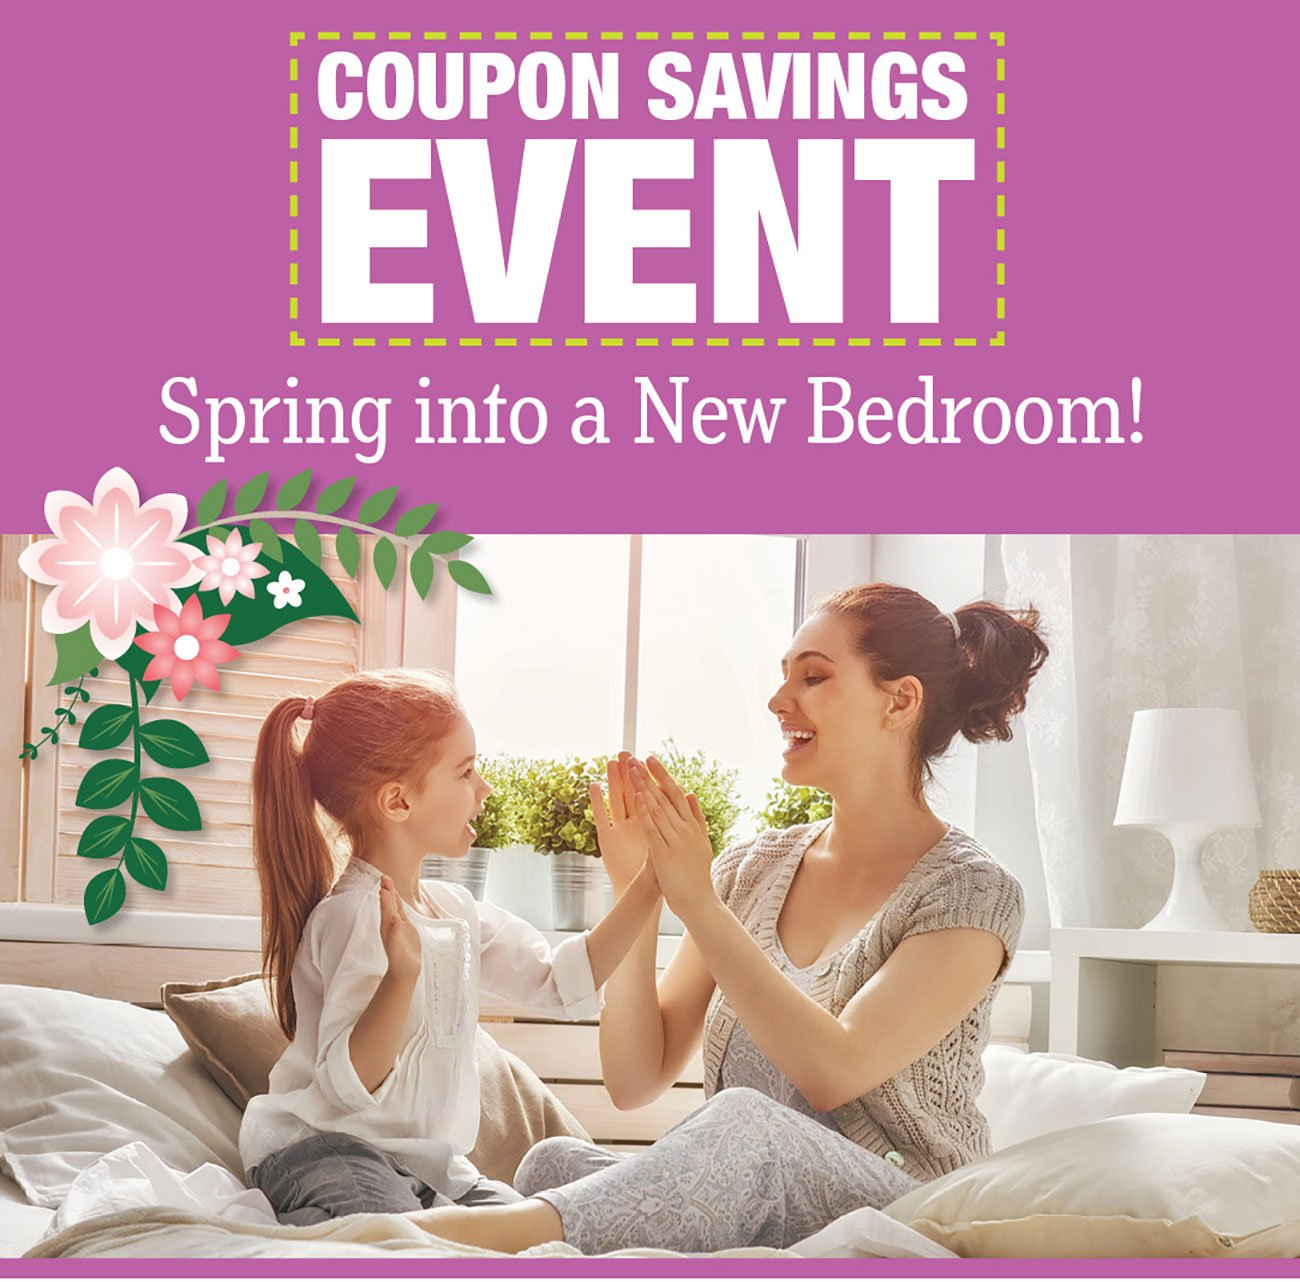 Coupon-Savings-Event-Bedroom-Header